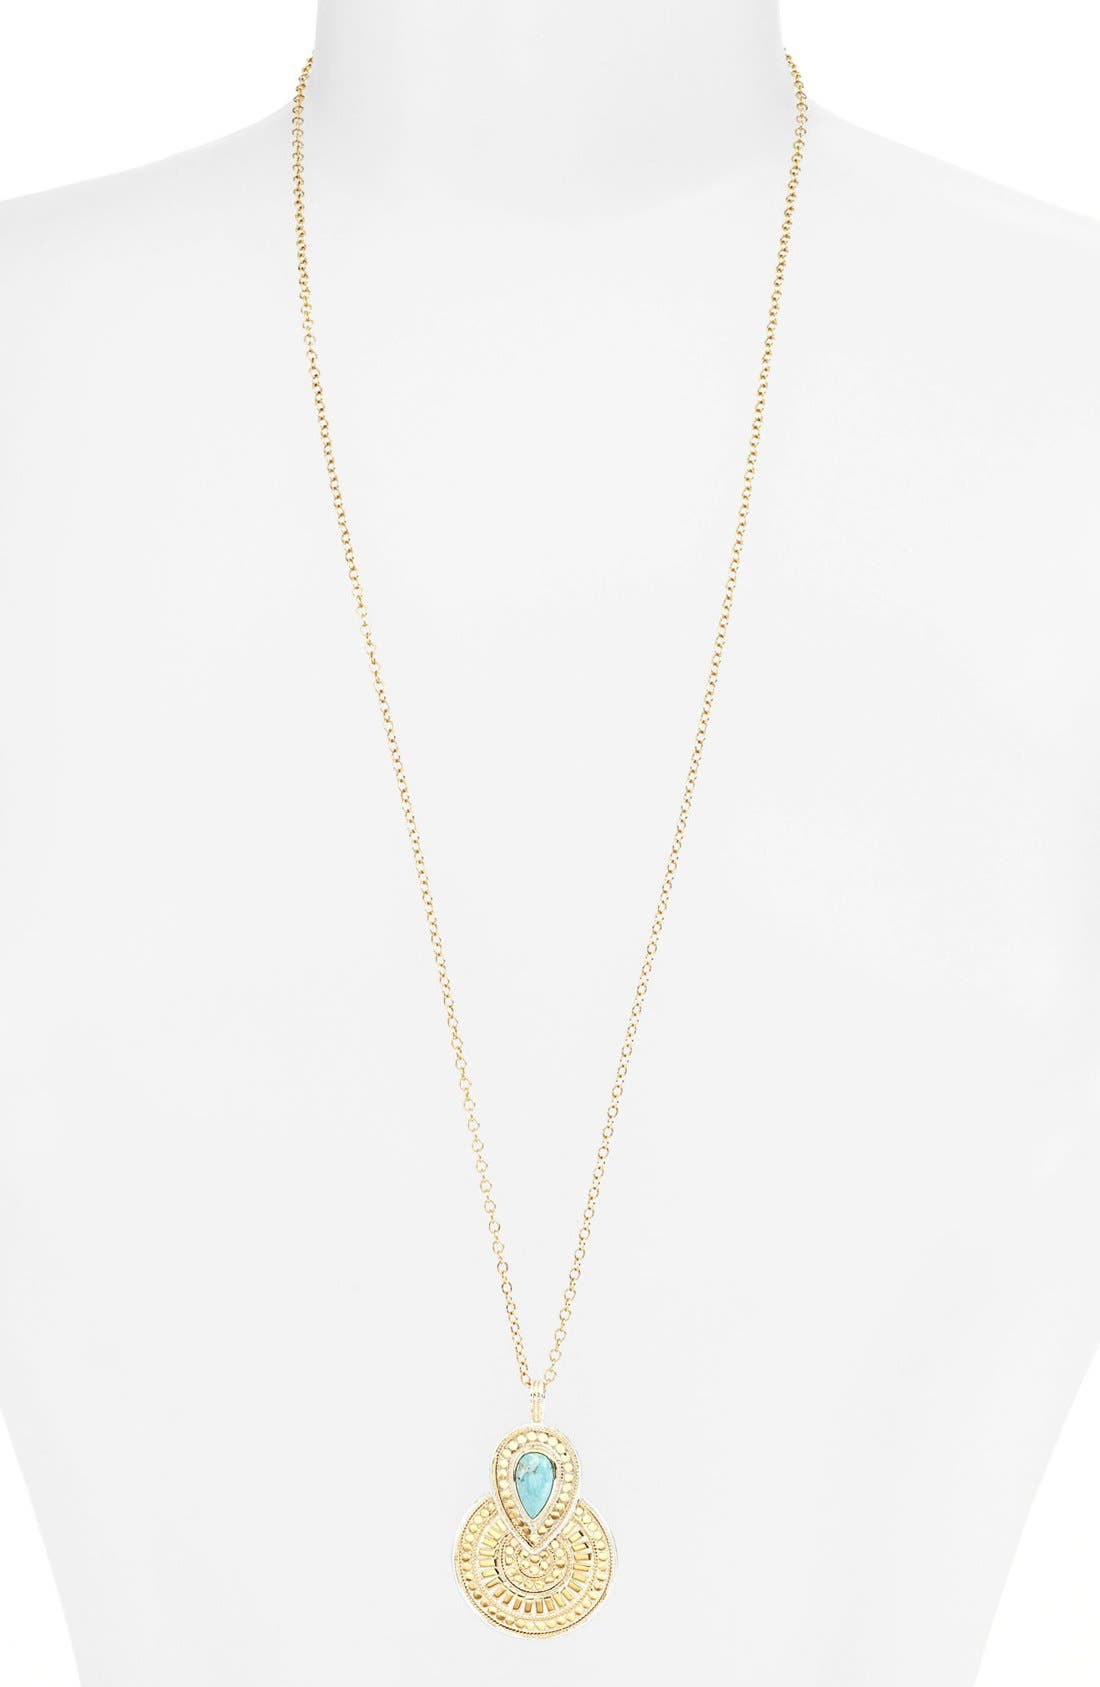 Main Image - Anna Beck 'Gili' Long Pendant Necklace